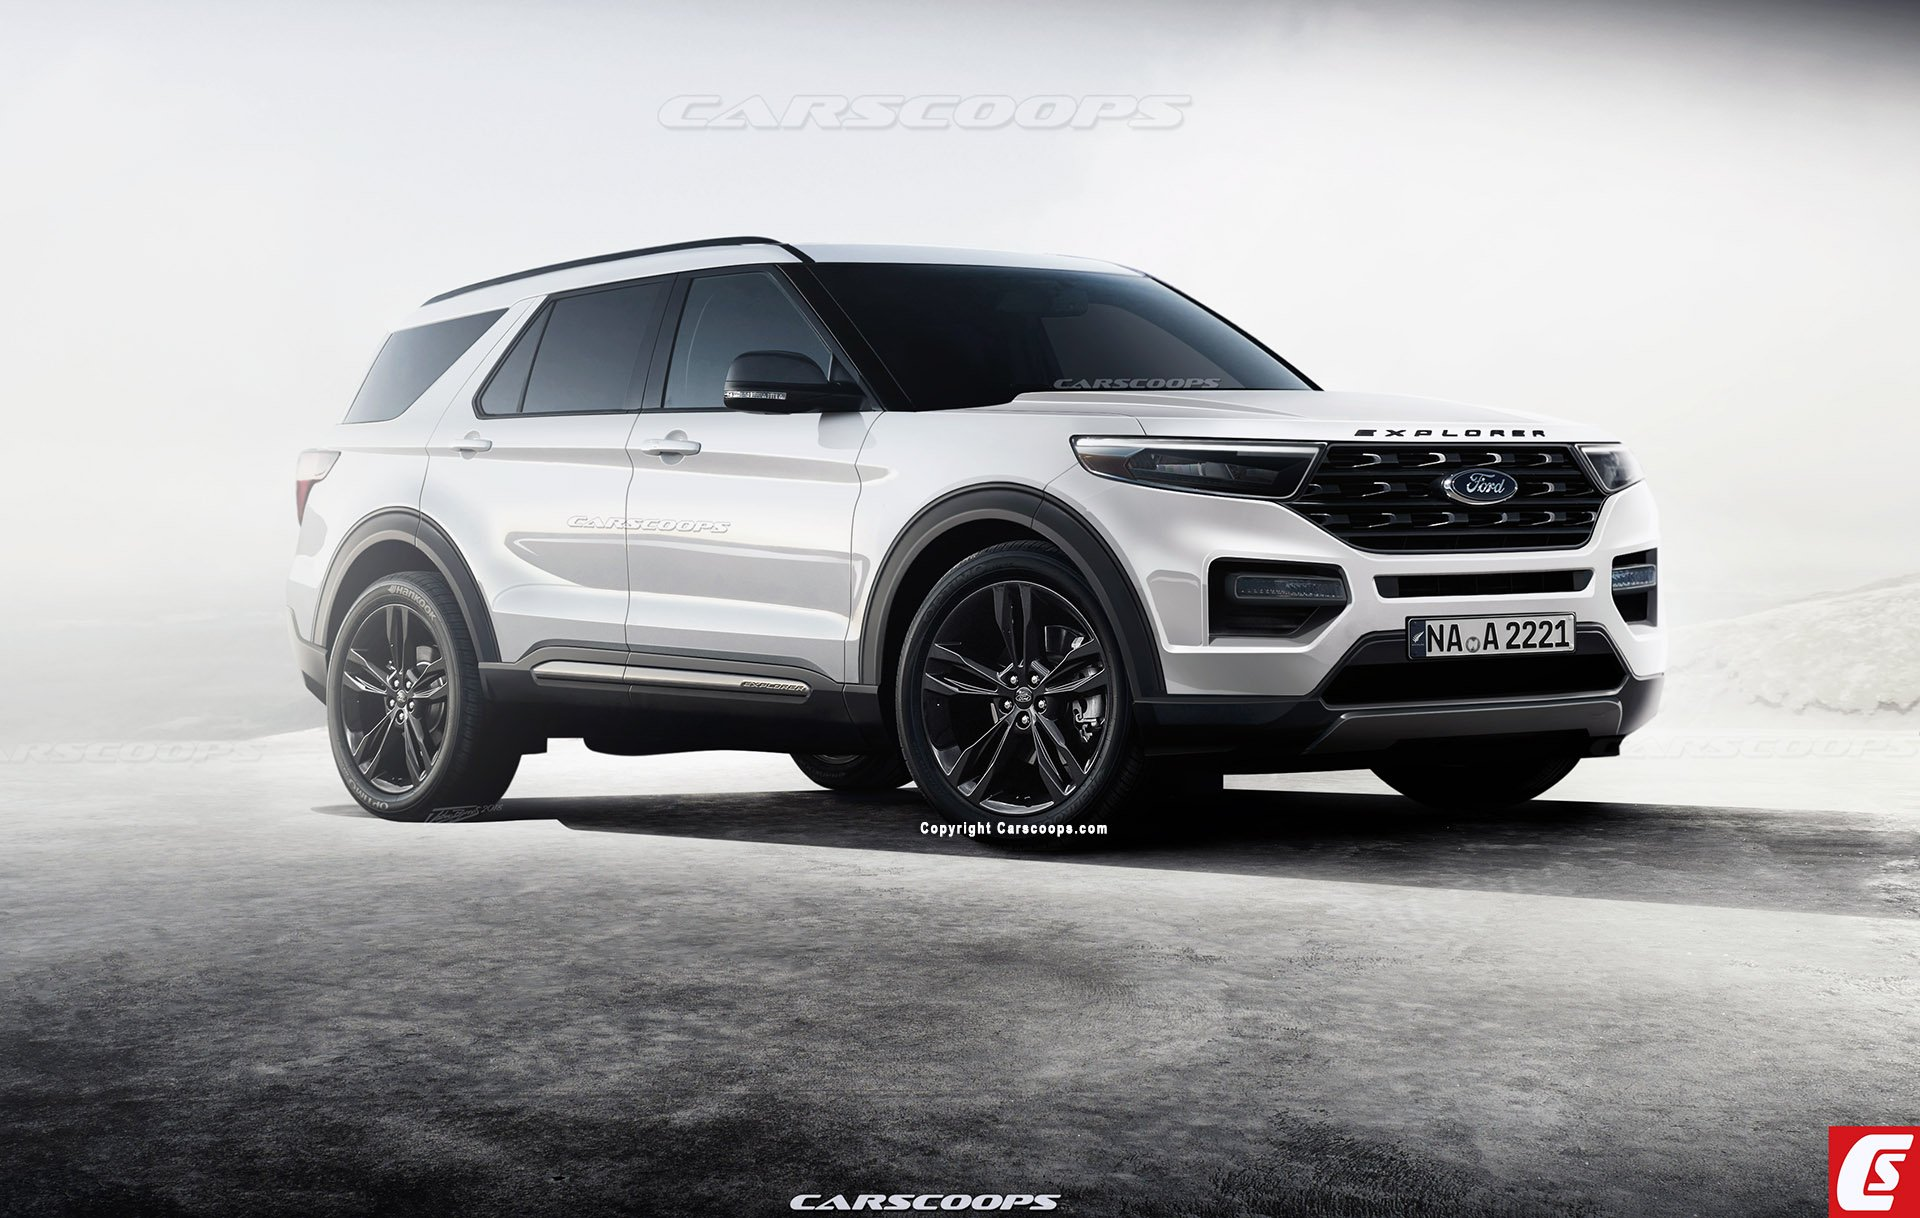 80 Gallery of When Will 2020 Ford Explorer Be Available Redesign for When Will 2020 Ford Explorer Be Available